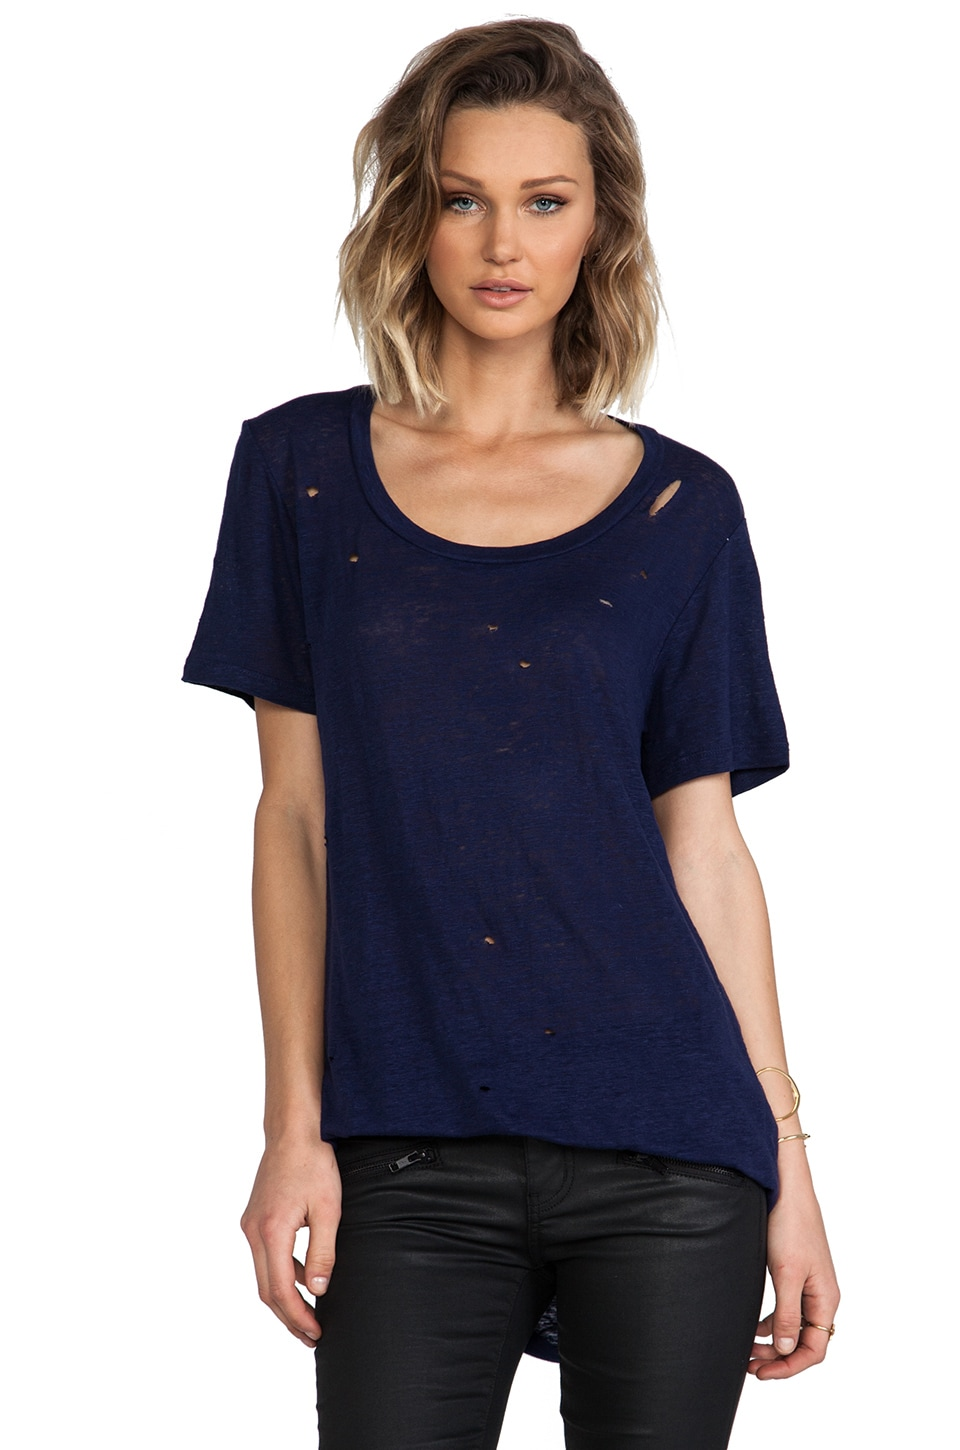 MONROW Linen Jersey Fashion Tee in Navy